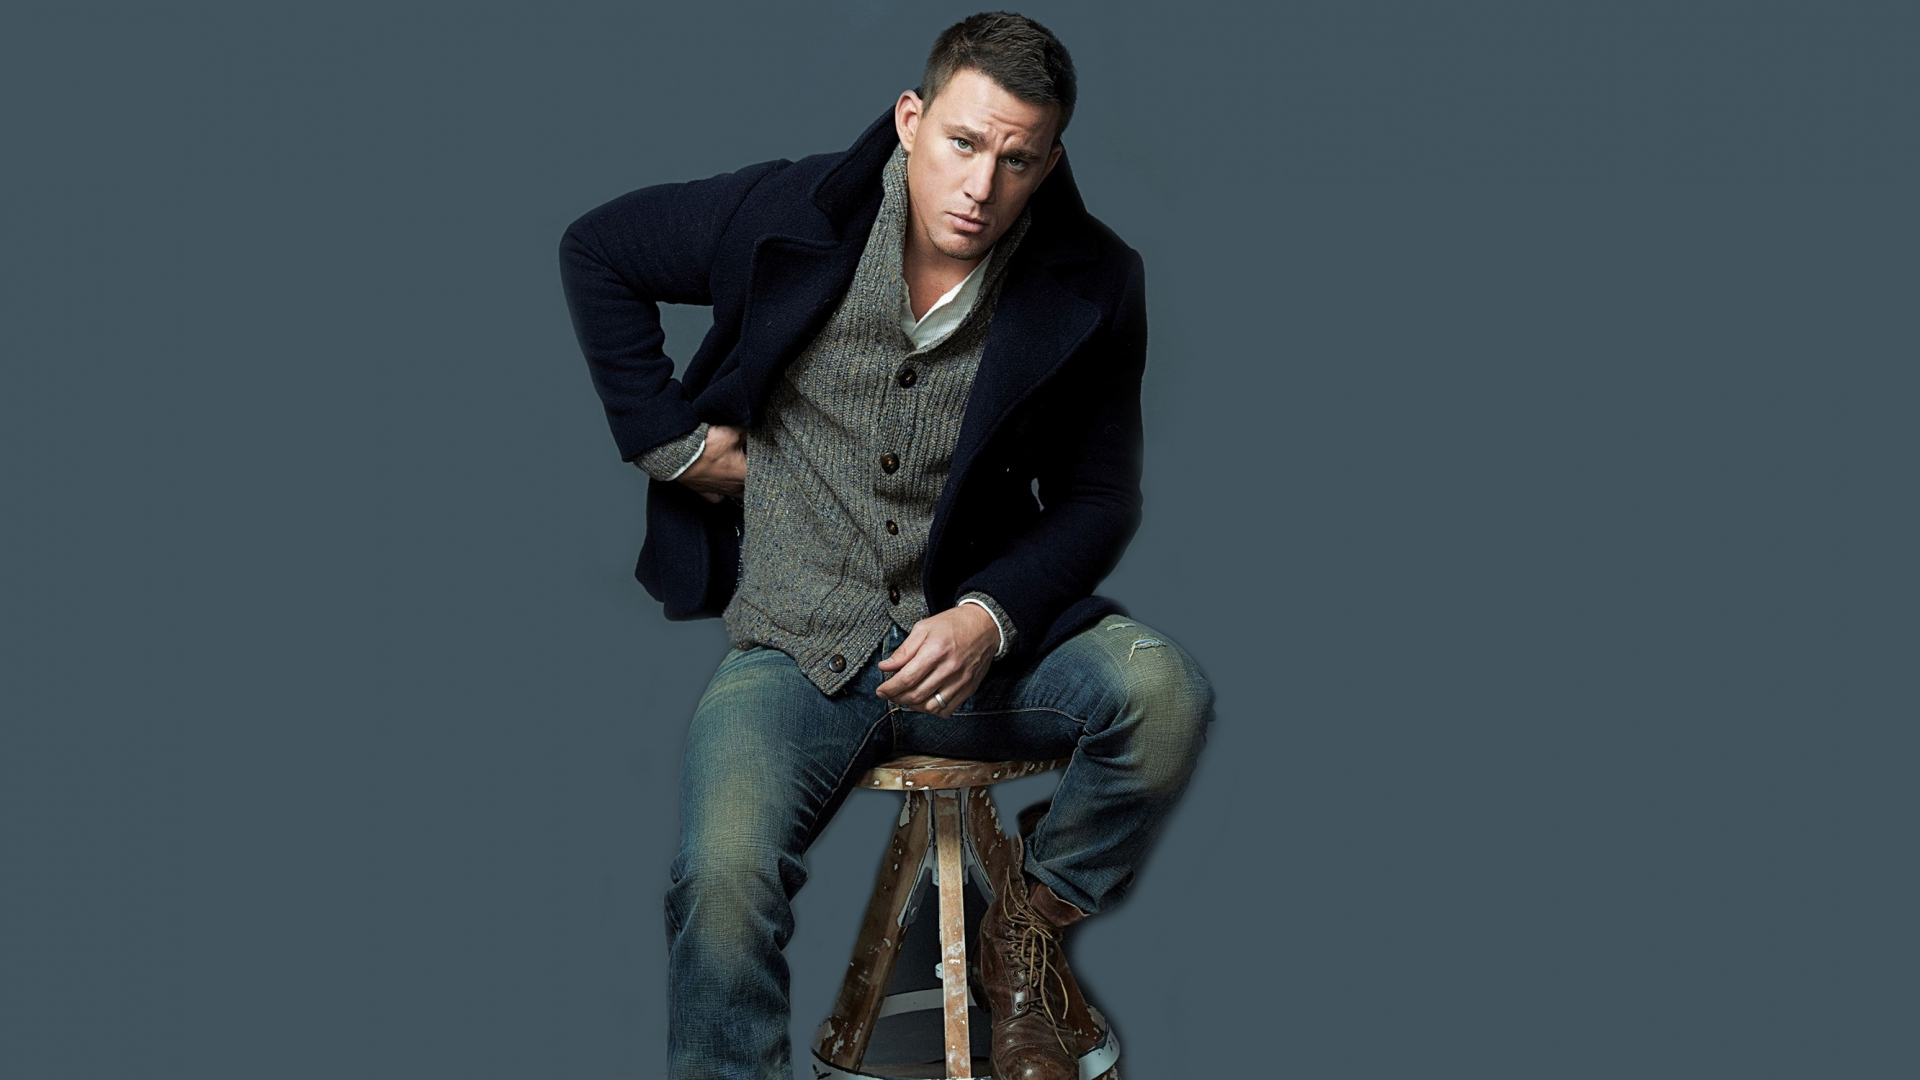 channing tatum wallpapers high resolution and quality download